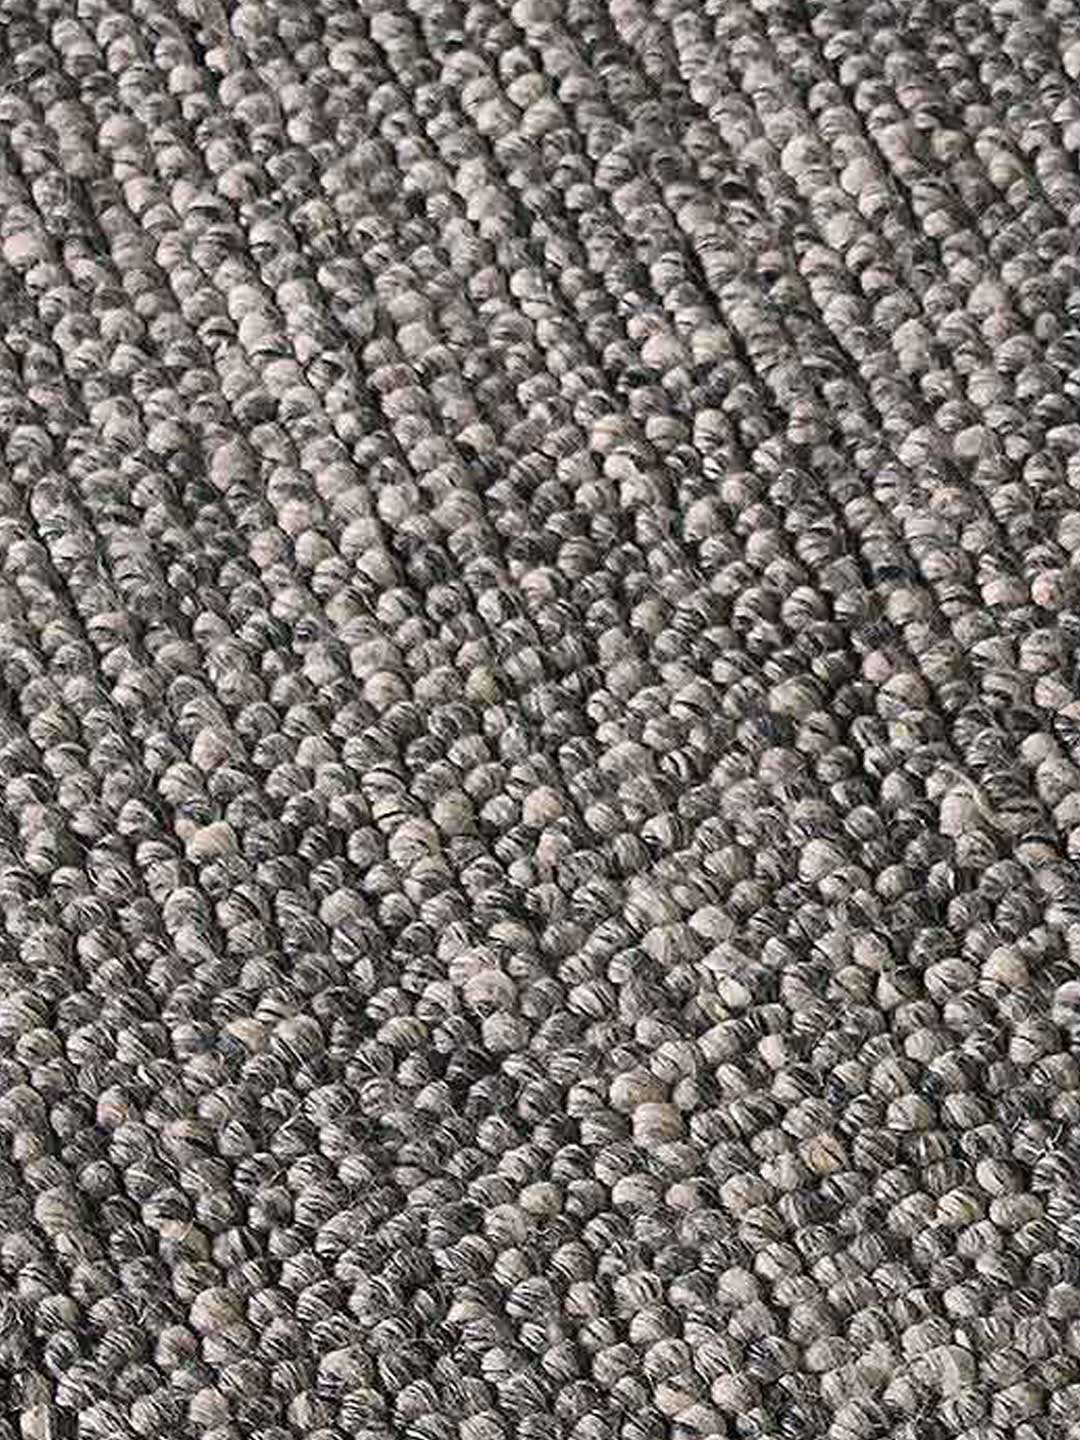 Fizzle textured loop pile rug in natural warm grey tones close up image